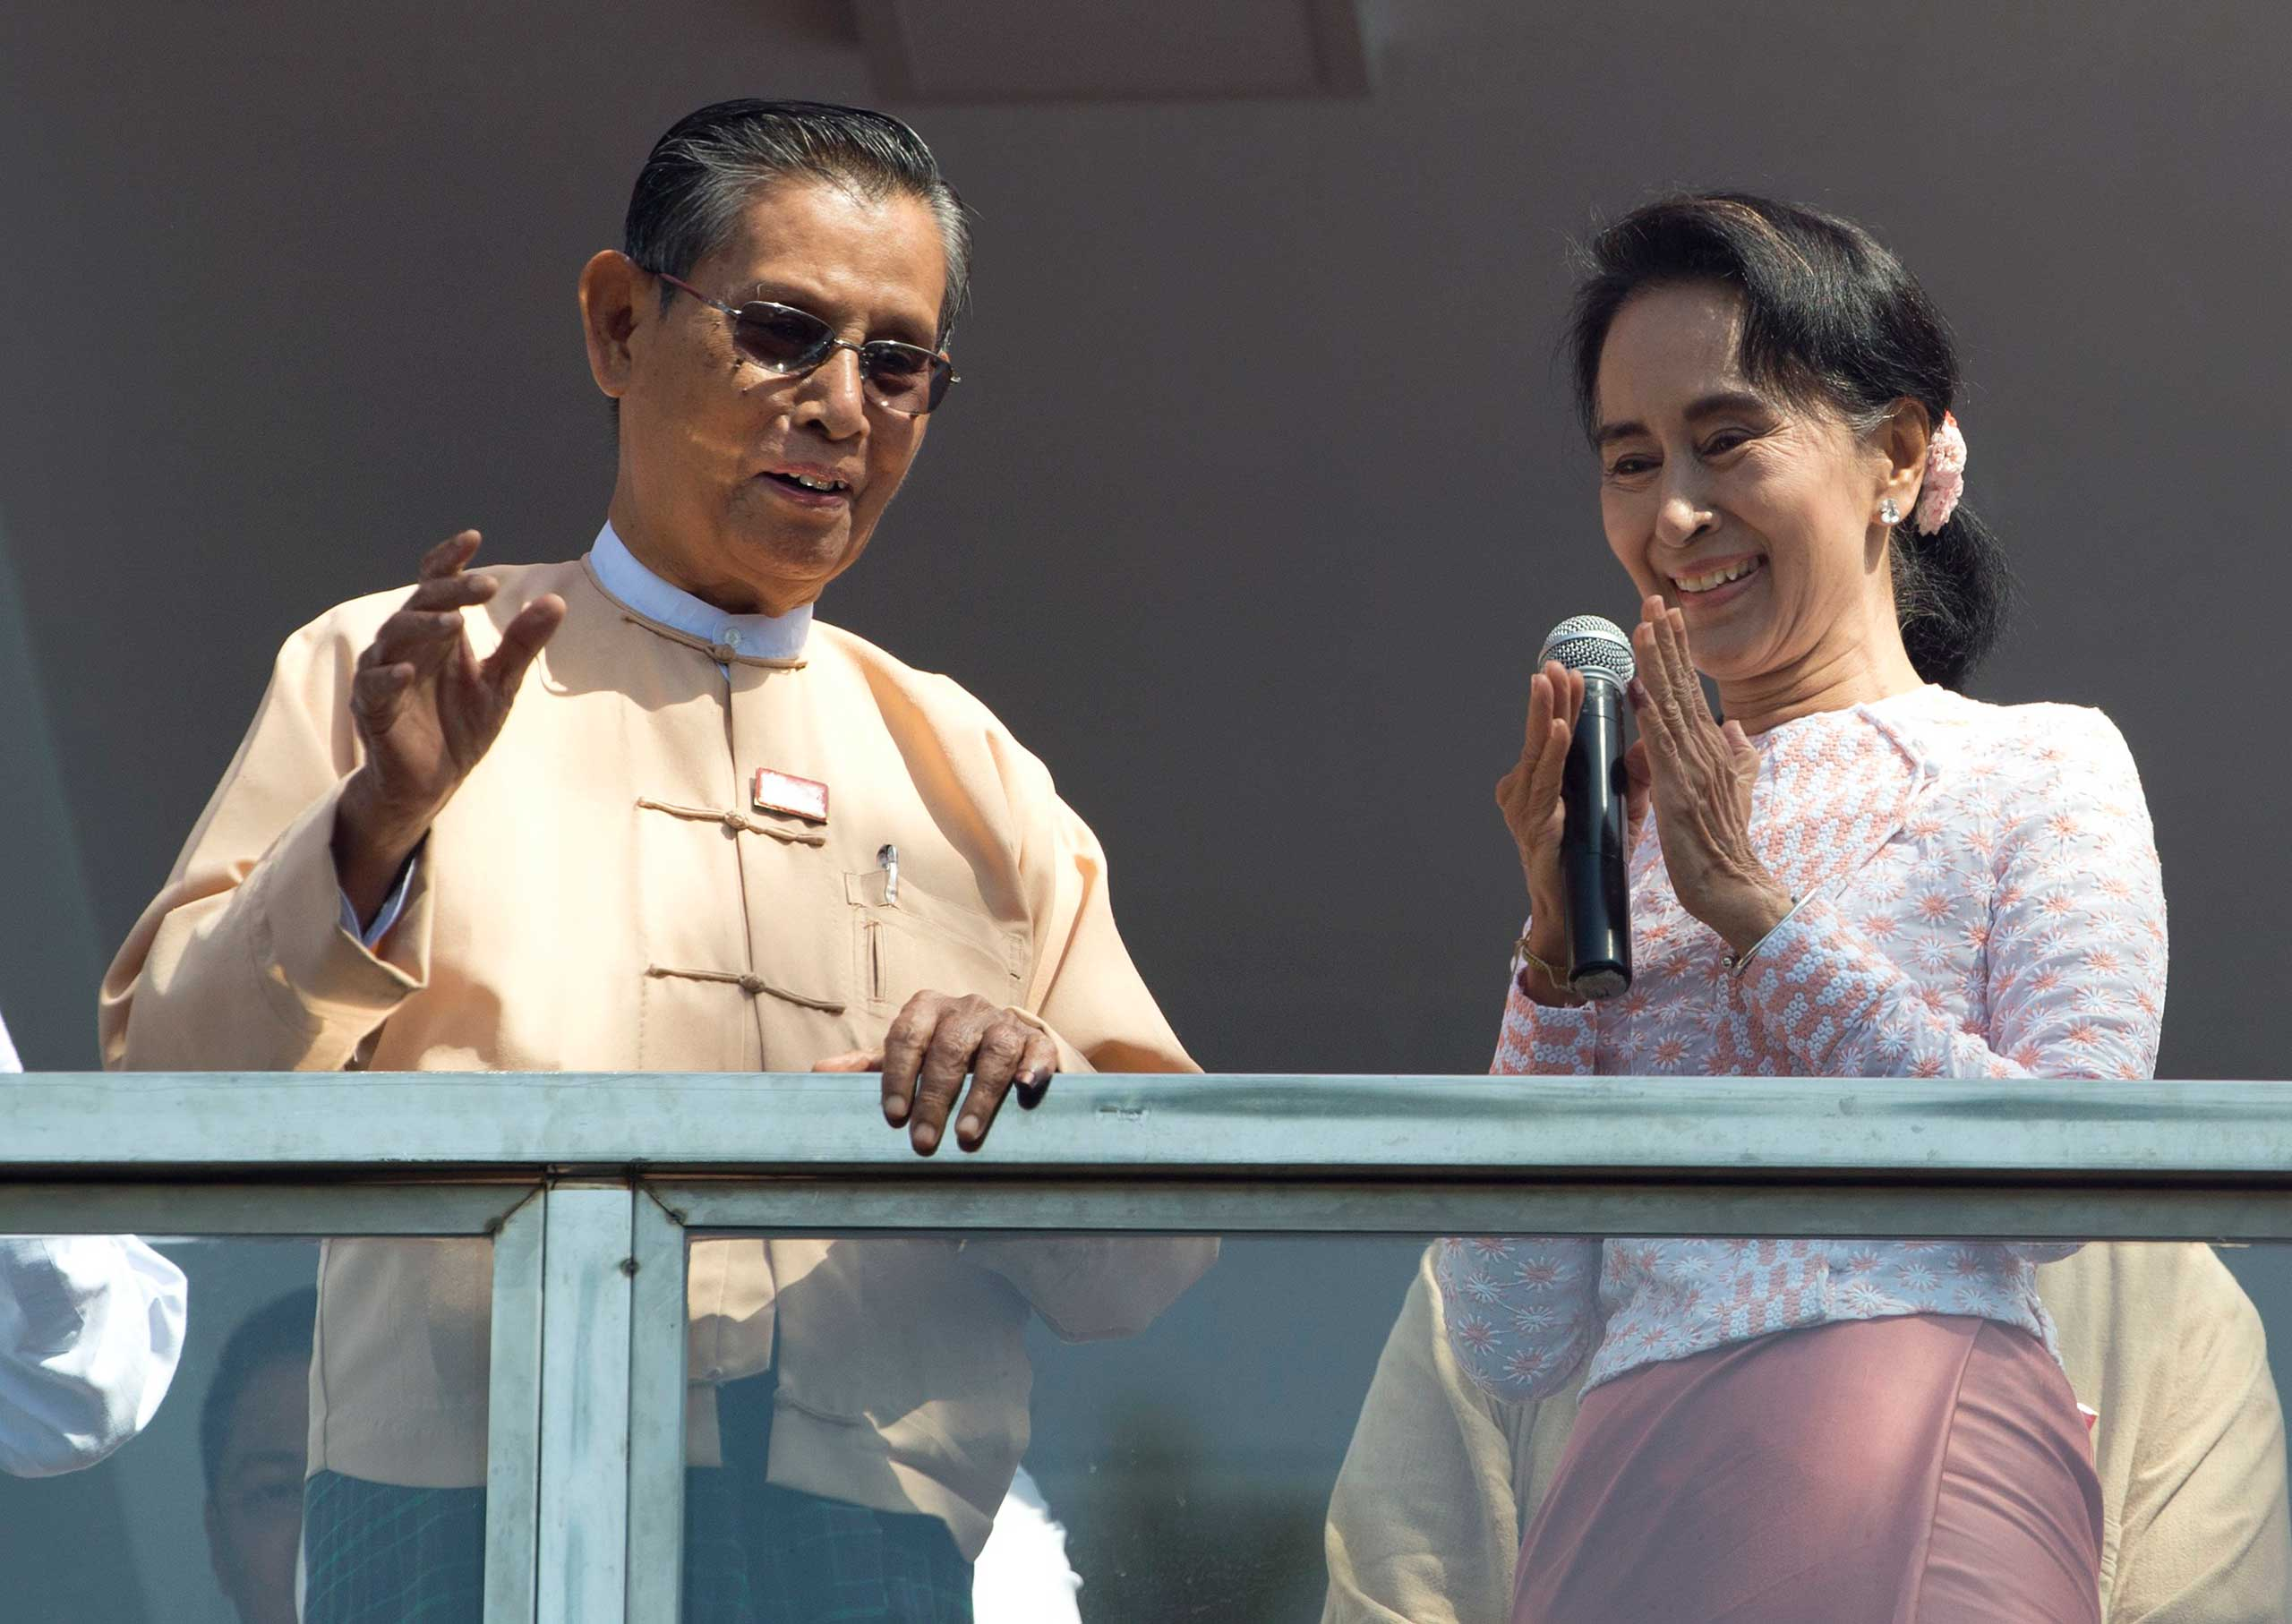 Aung San Suu Kyi delivers a speech with party patron Tin Oo from a balcony of her party's headquarters in Rangoon, Burma, on Nov. 9, 2015.